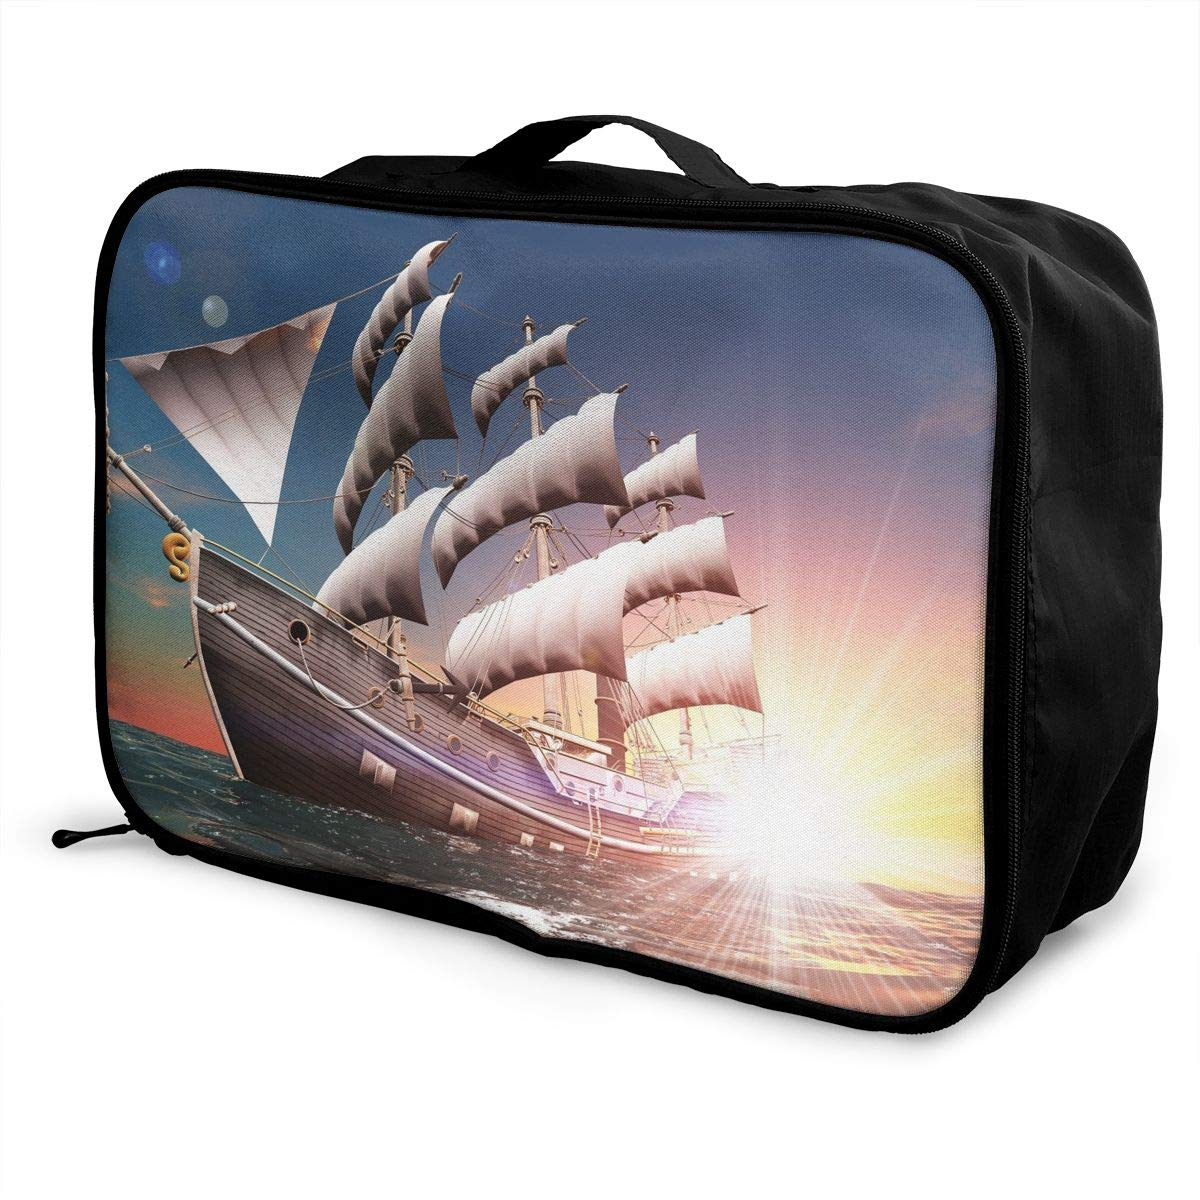 Travel Luggage Duffle Bag Lightweight Portable Handbag Sailing Ship Large Capacity Waterproof Foldable Storage Tote